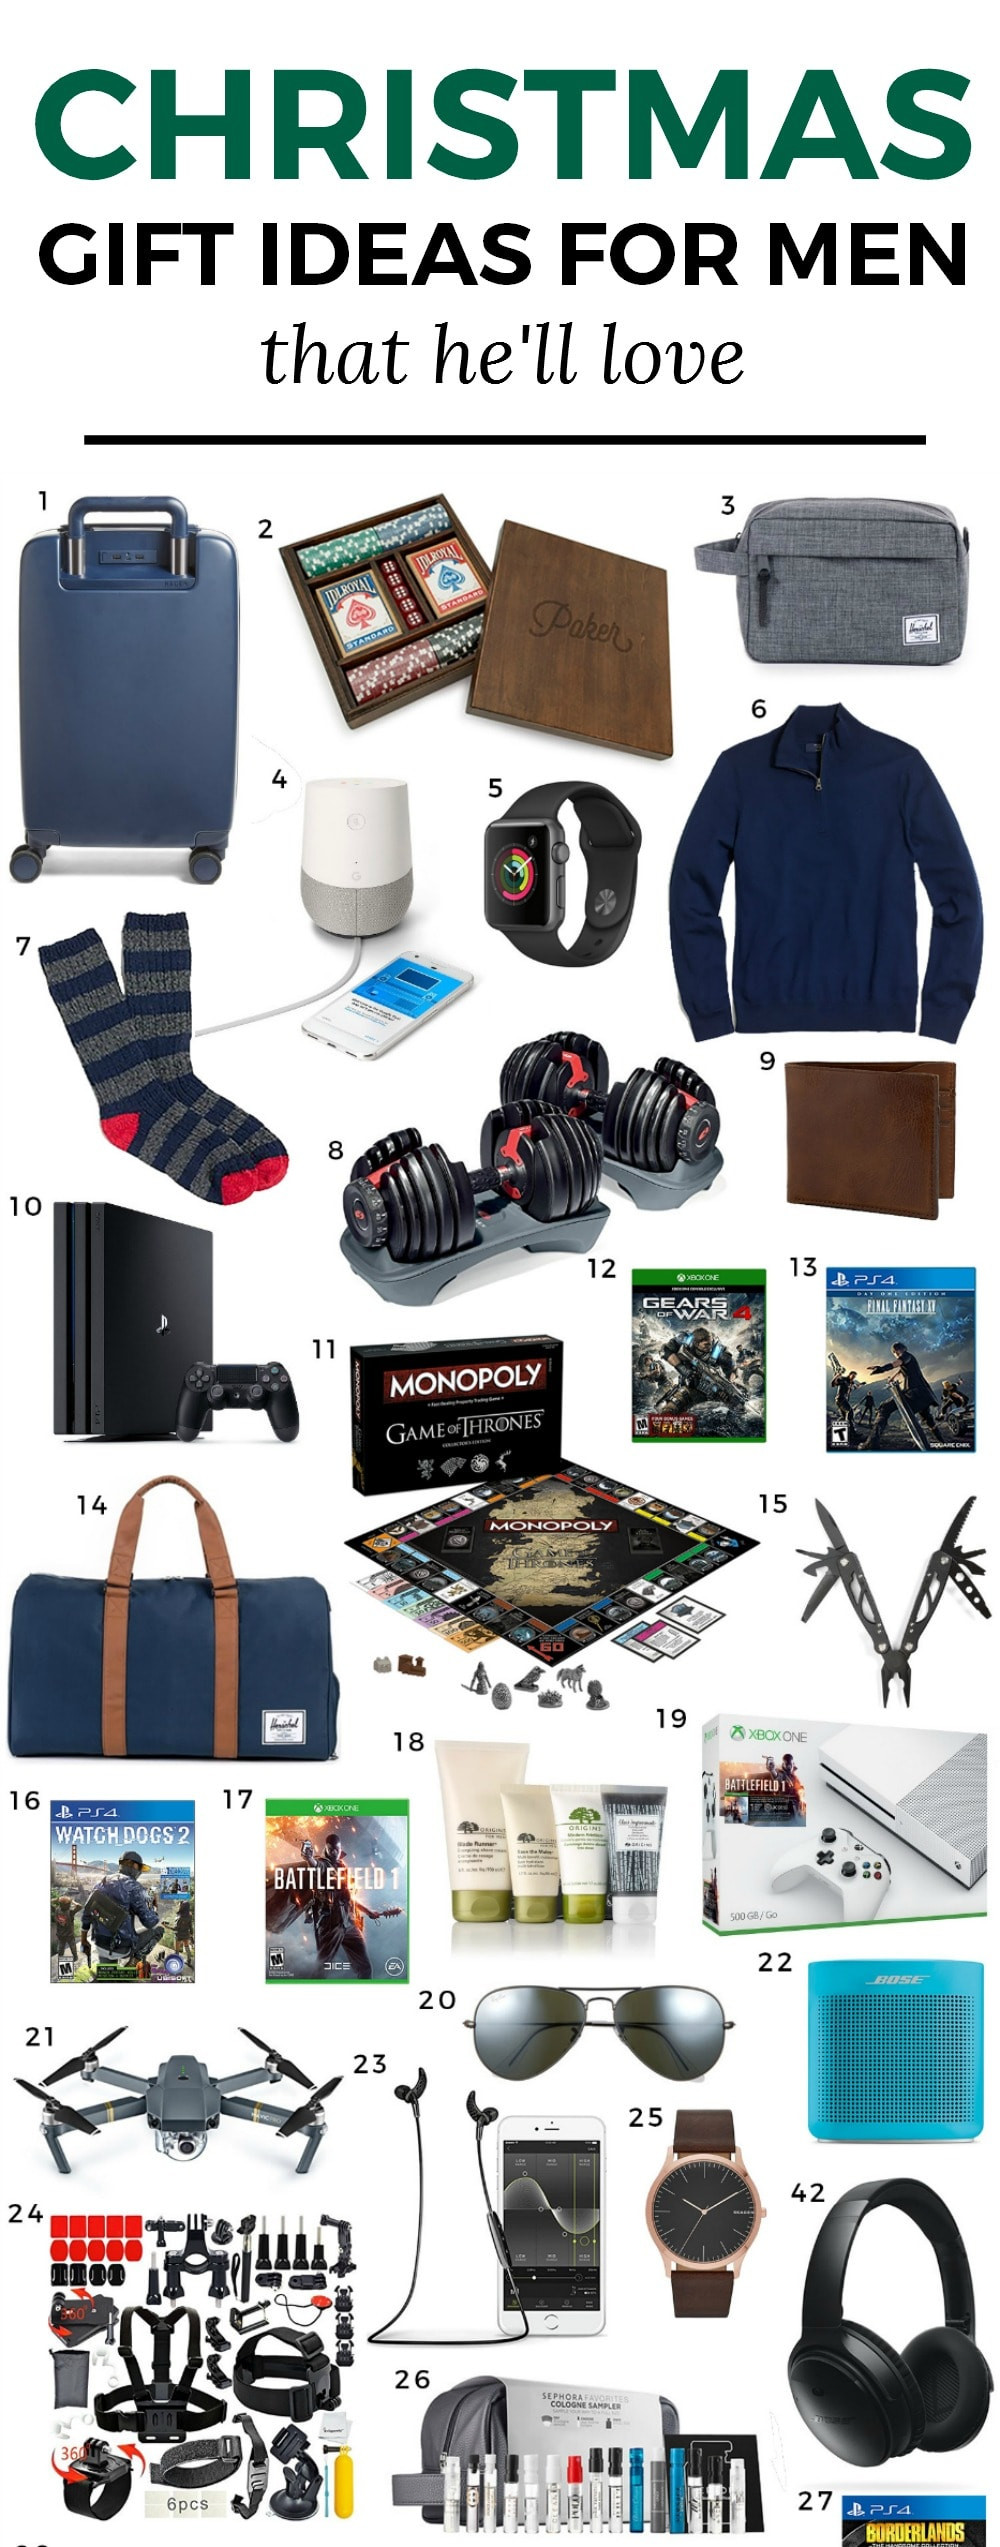 Best ideas about Top Gift Ideas For Men . Save or Pin The Best Christmas Gift Ideas for Men Now.